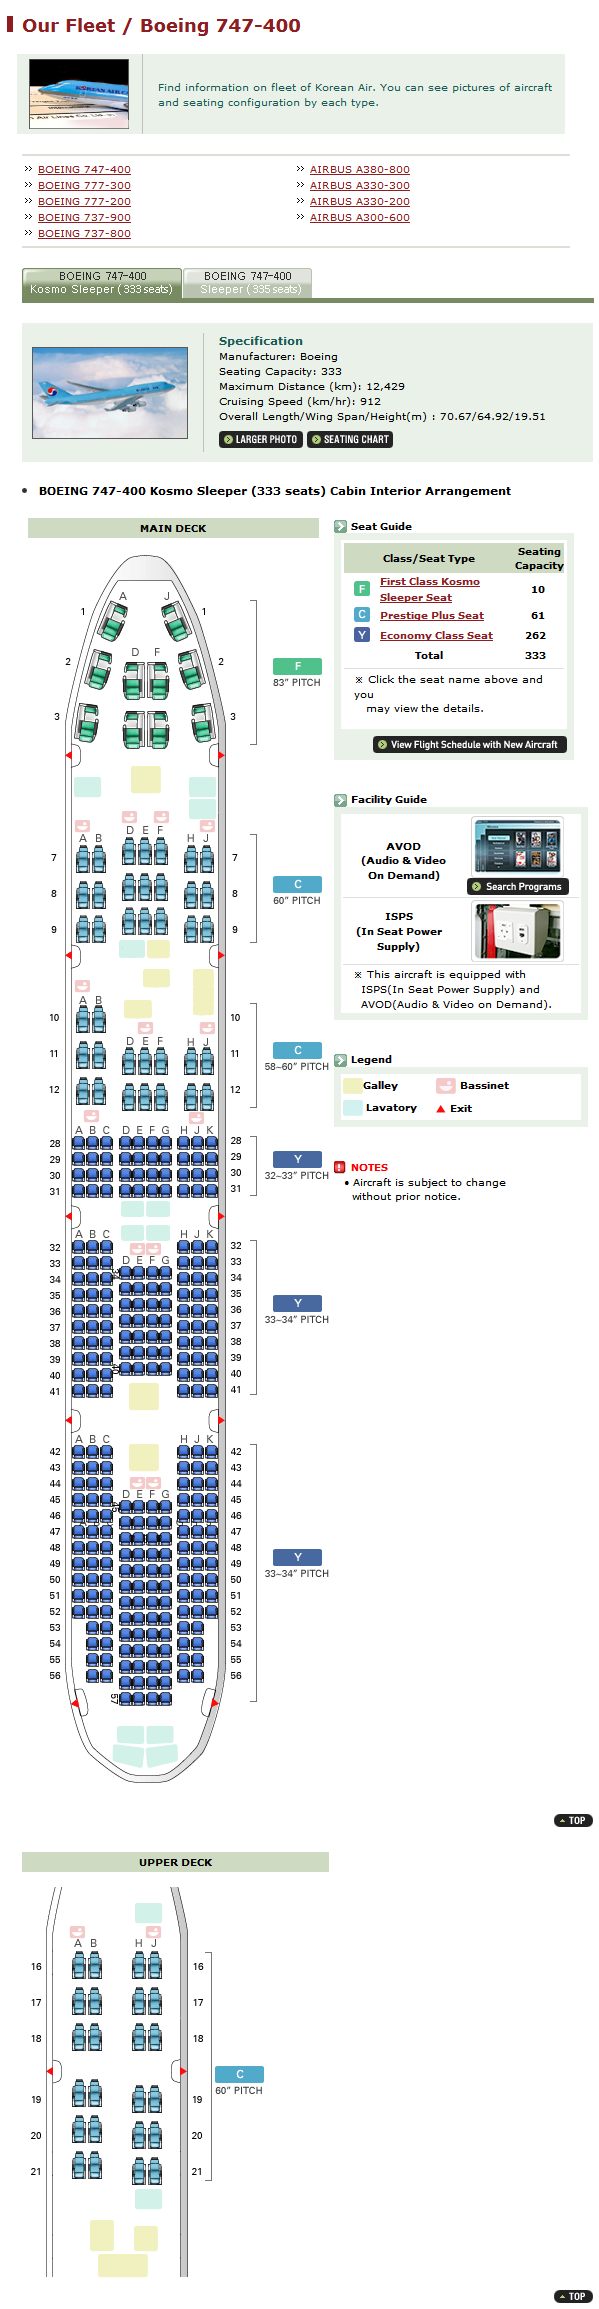 KOREAN AIR AIRLINES BOEING 747-400 AIRCRAFT SEATING CHART